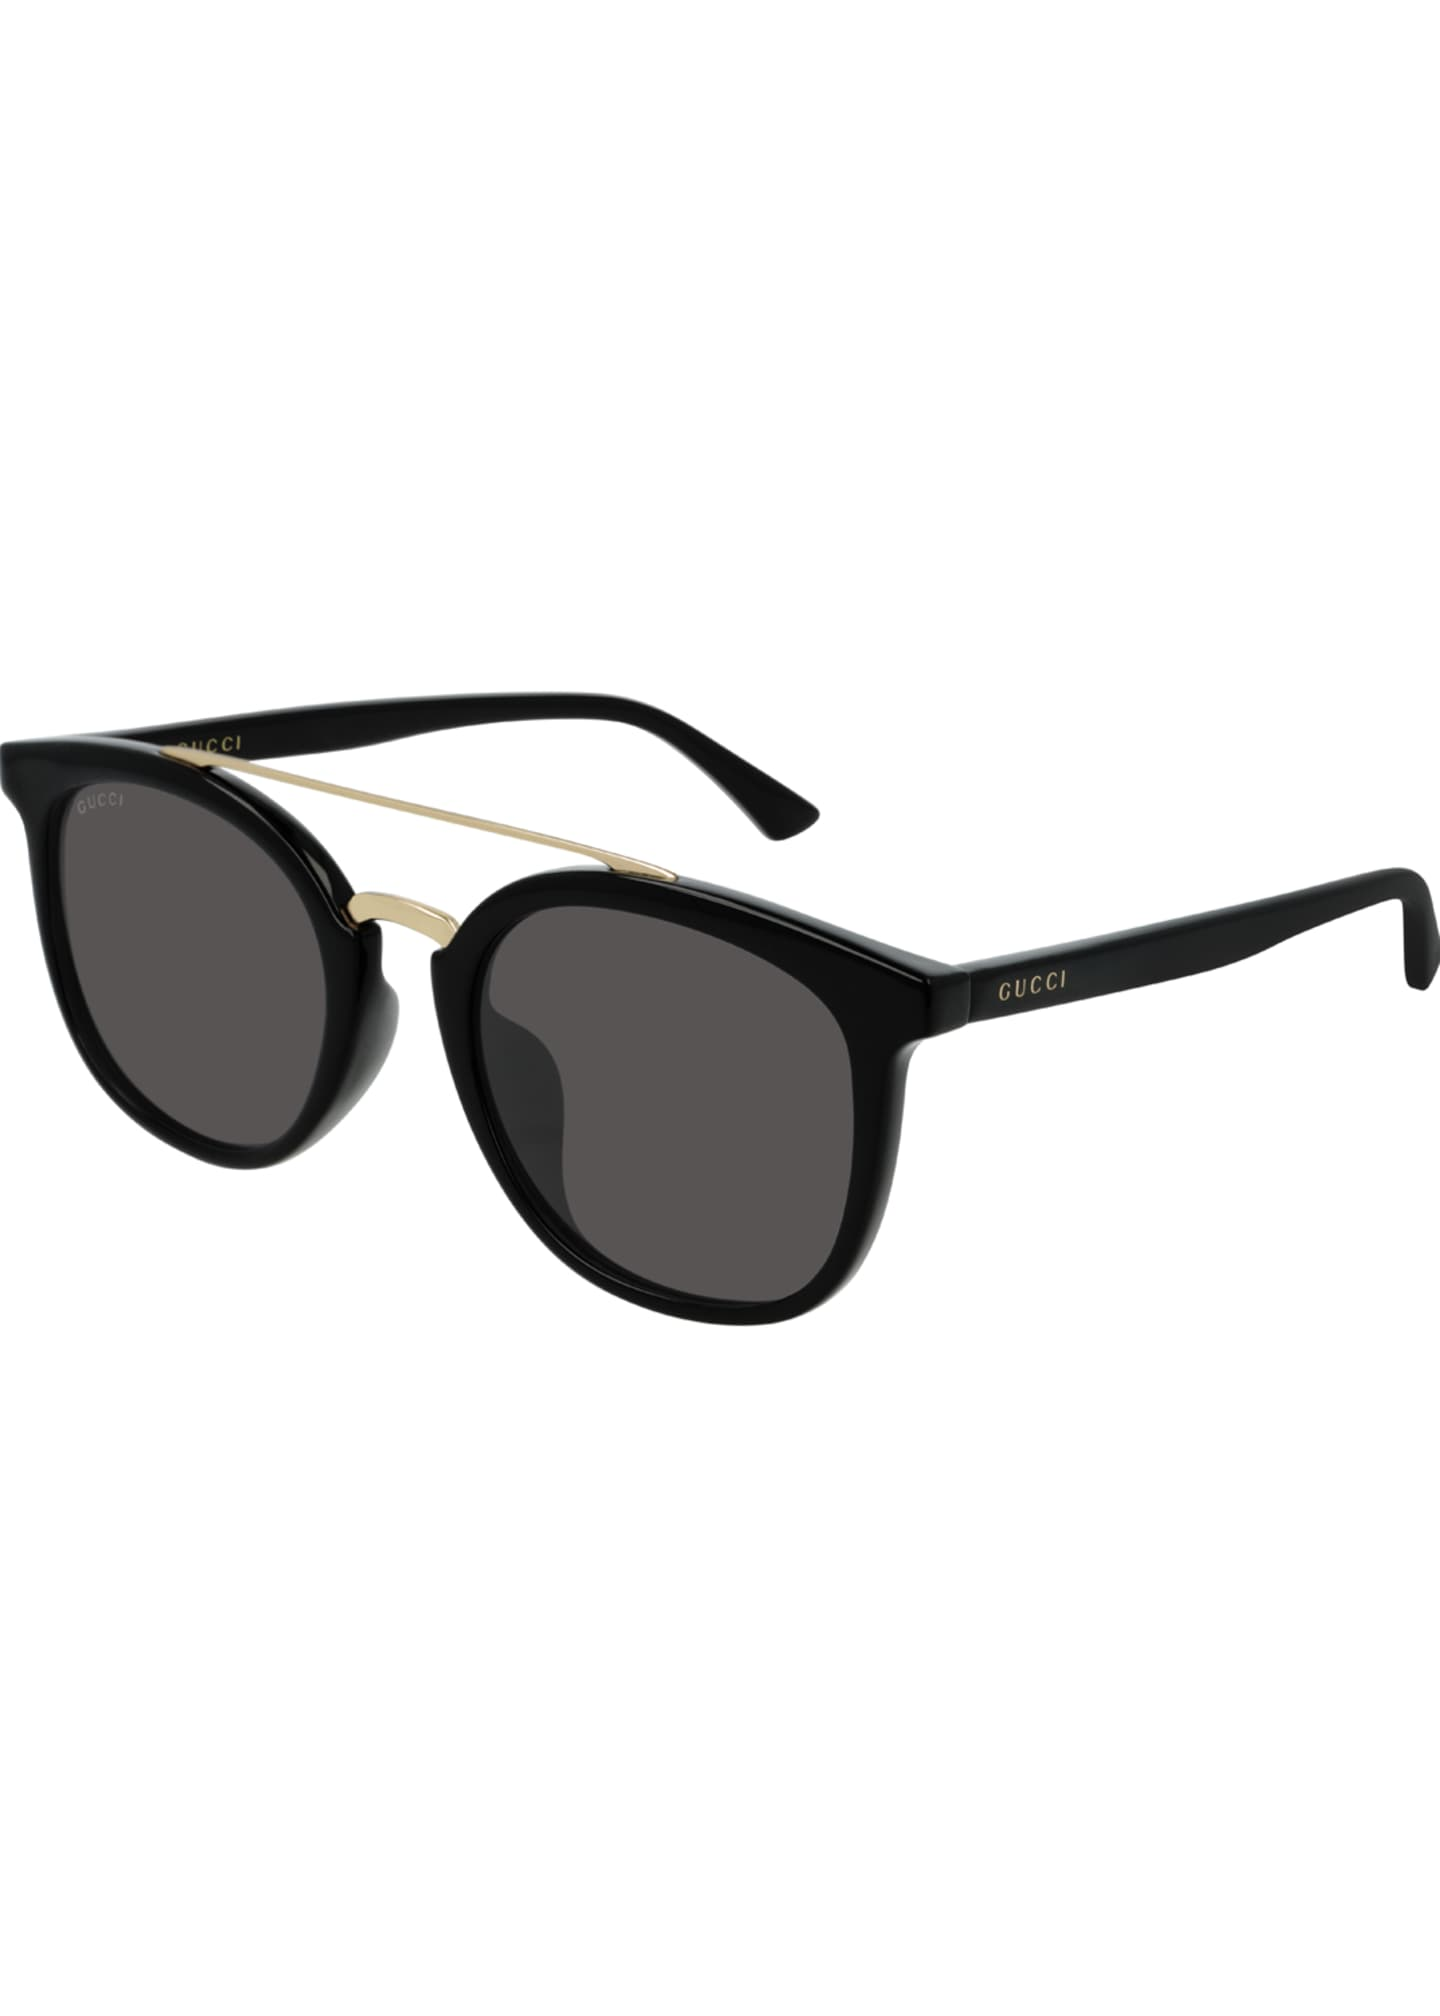 Image 1 of 1: Men's GG0403SA001M Round Keyhole Sunglasses